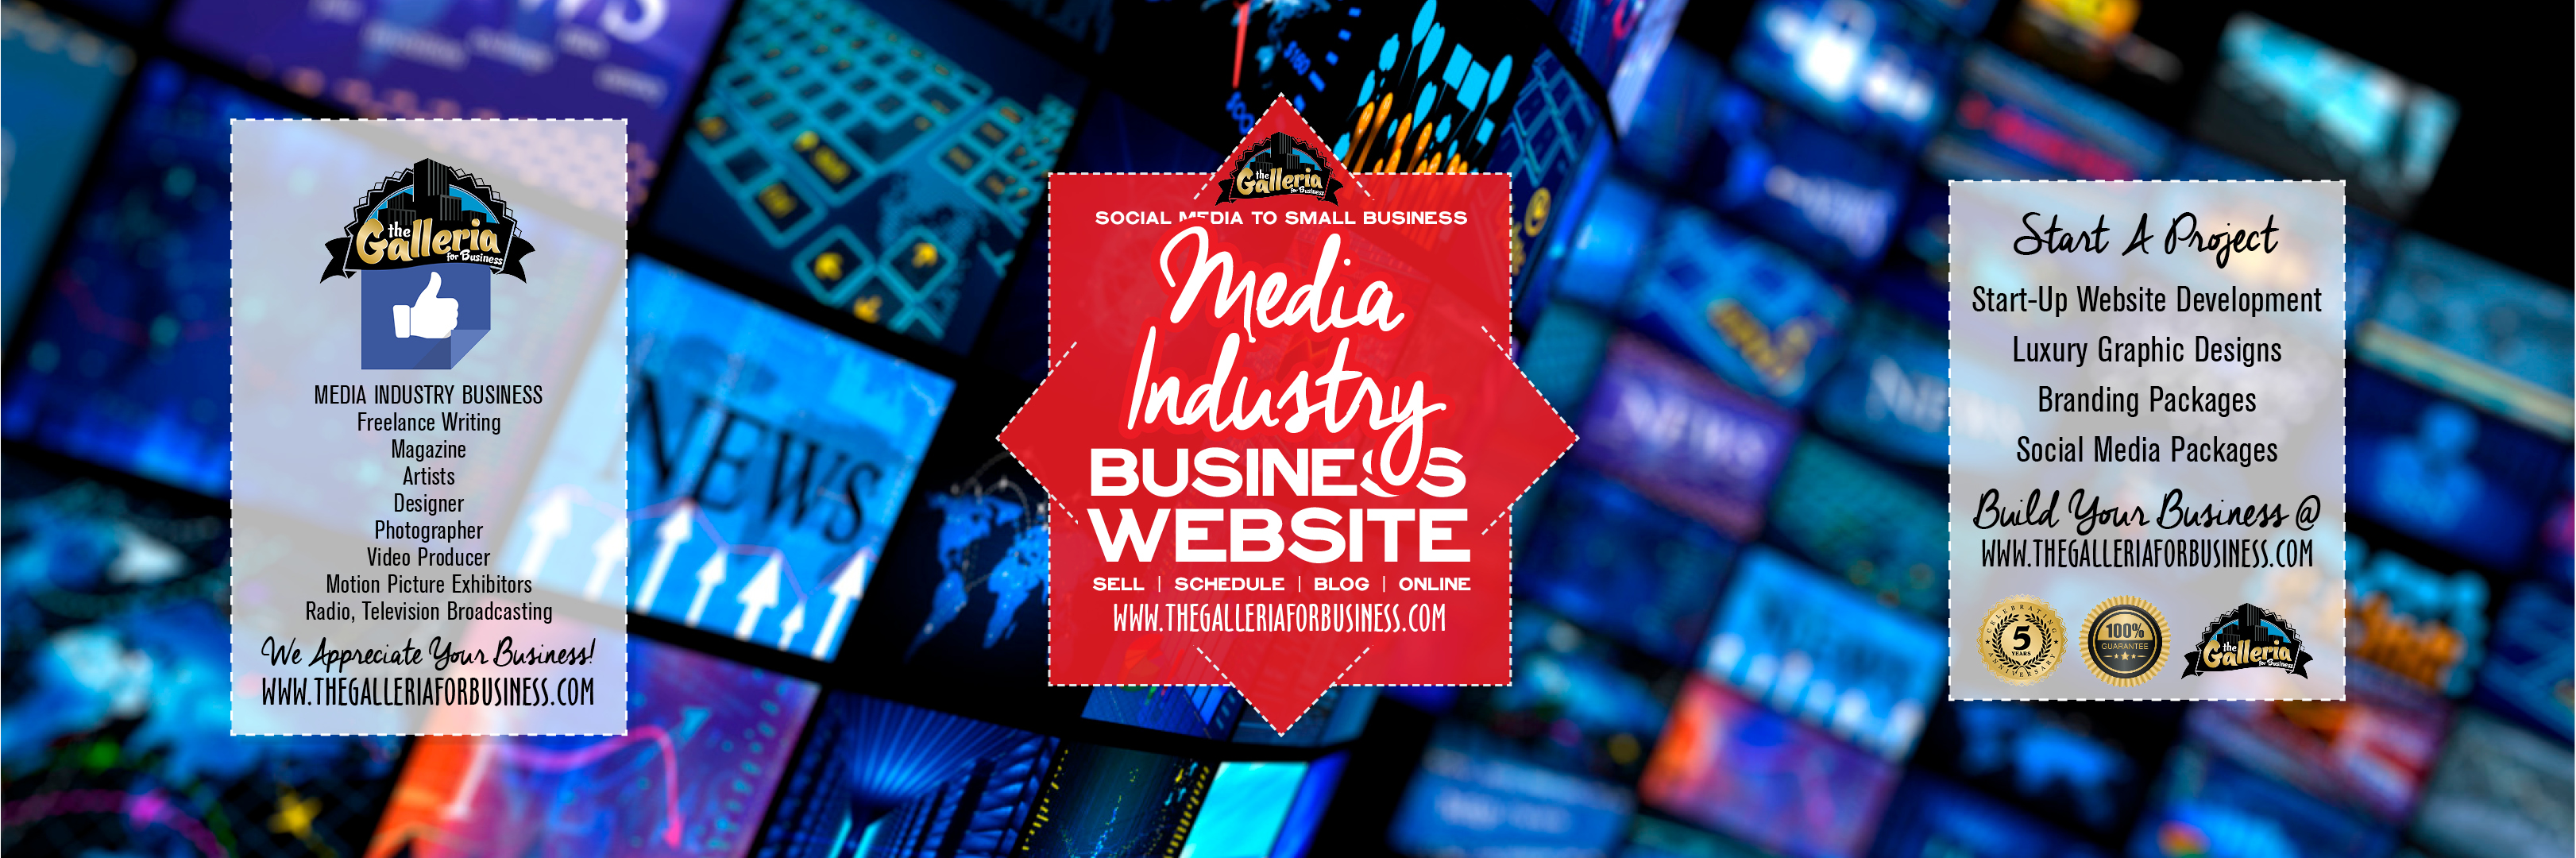 Media Industry Business